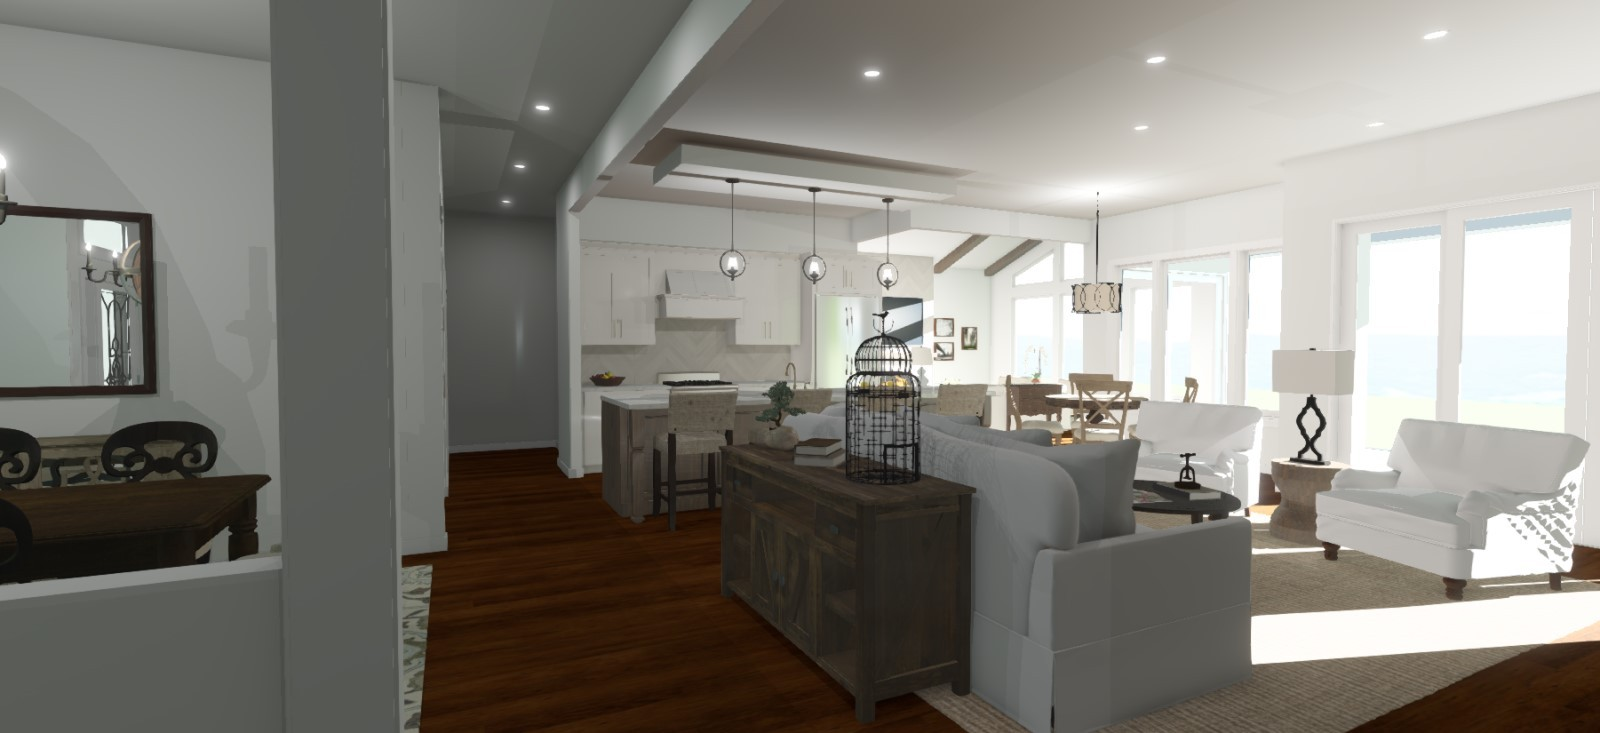 Open living/kitchen area with kitchen pendant lights and natural light